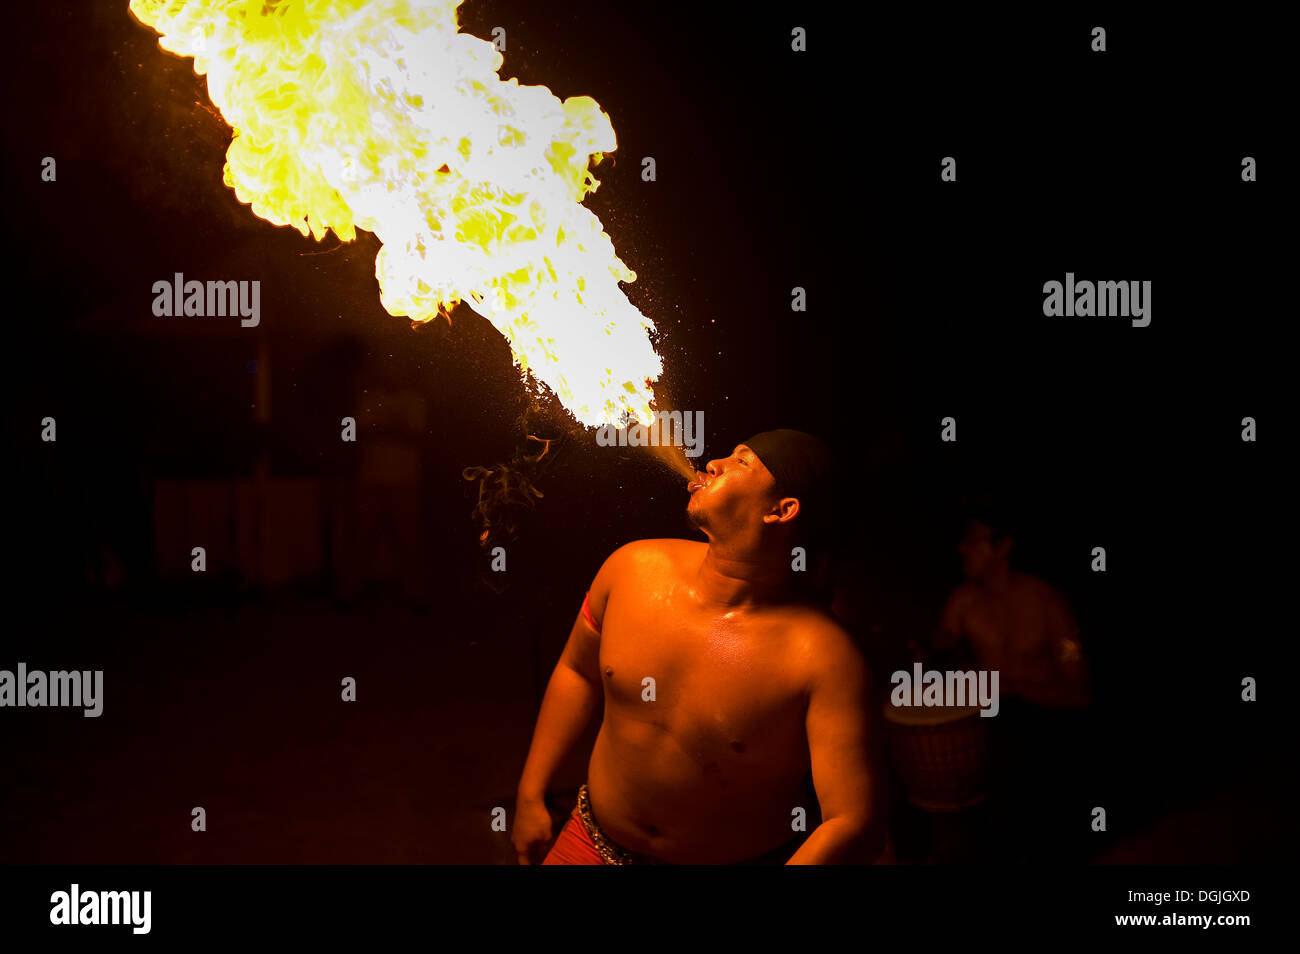 A fire breather performing in Langkawi. - Stock Image